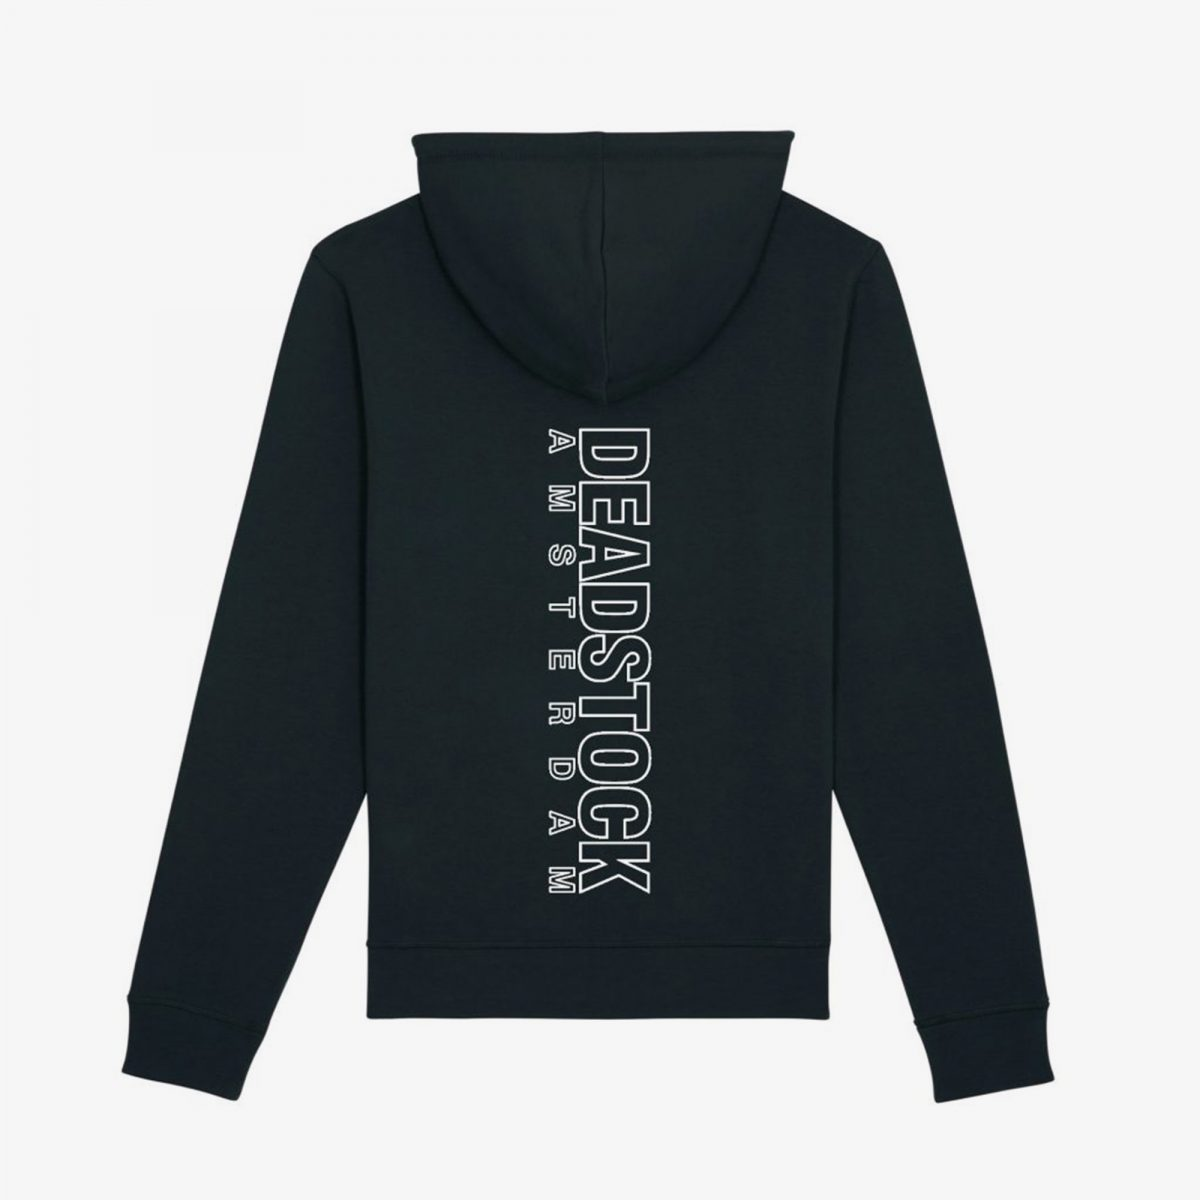 Return-Black-Hoodie-Back-Grey-Background